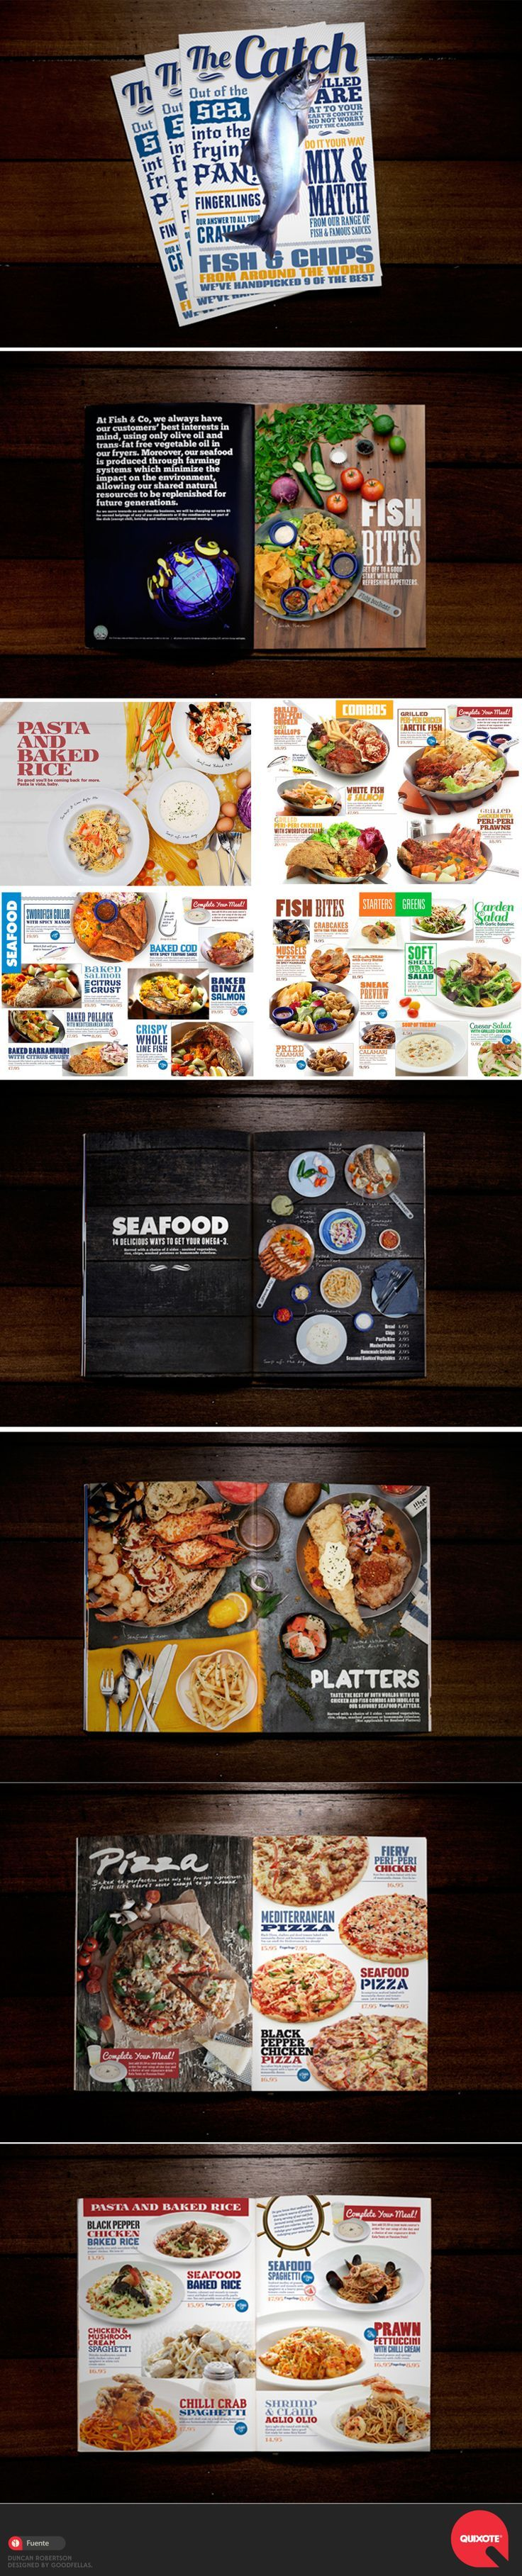 Great and fun Menu Design. This menu showcases the restaurant's food through tantalizing photos and merry typography. Fish & Co. is located in Singapore.  Design by Goodfellas: